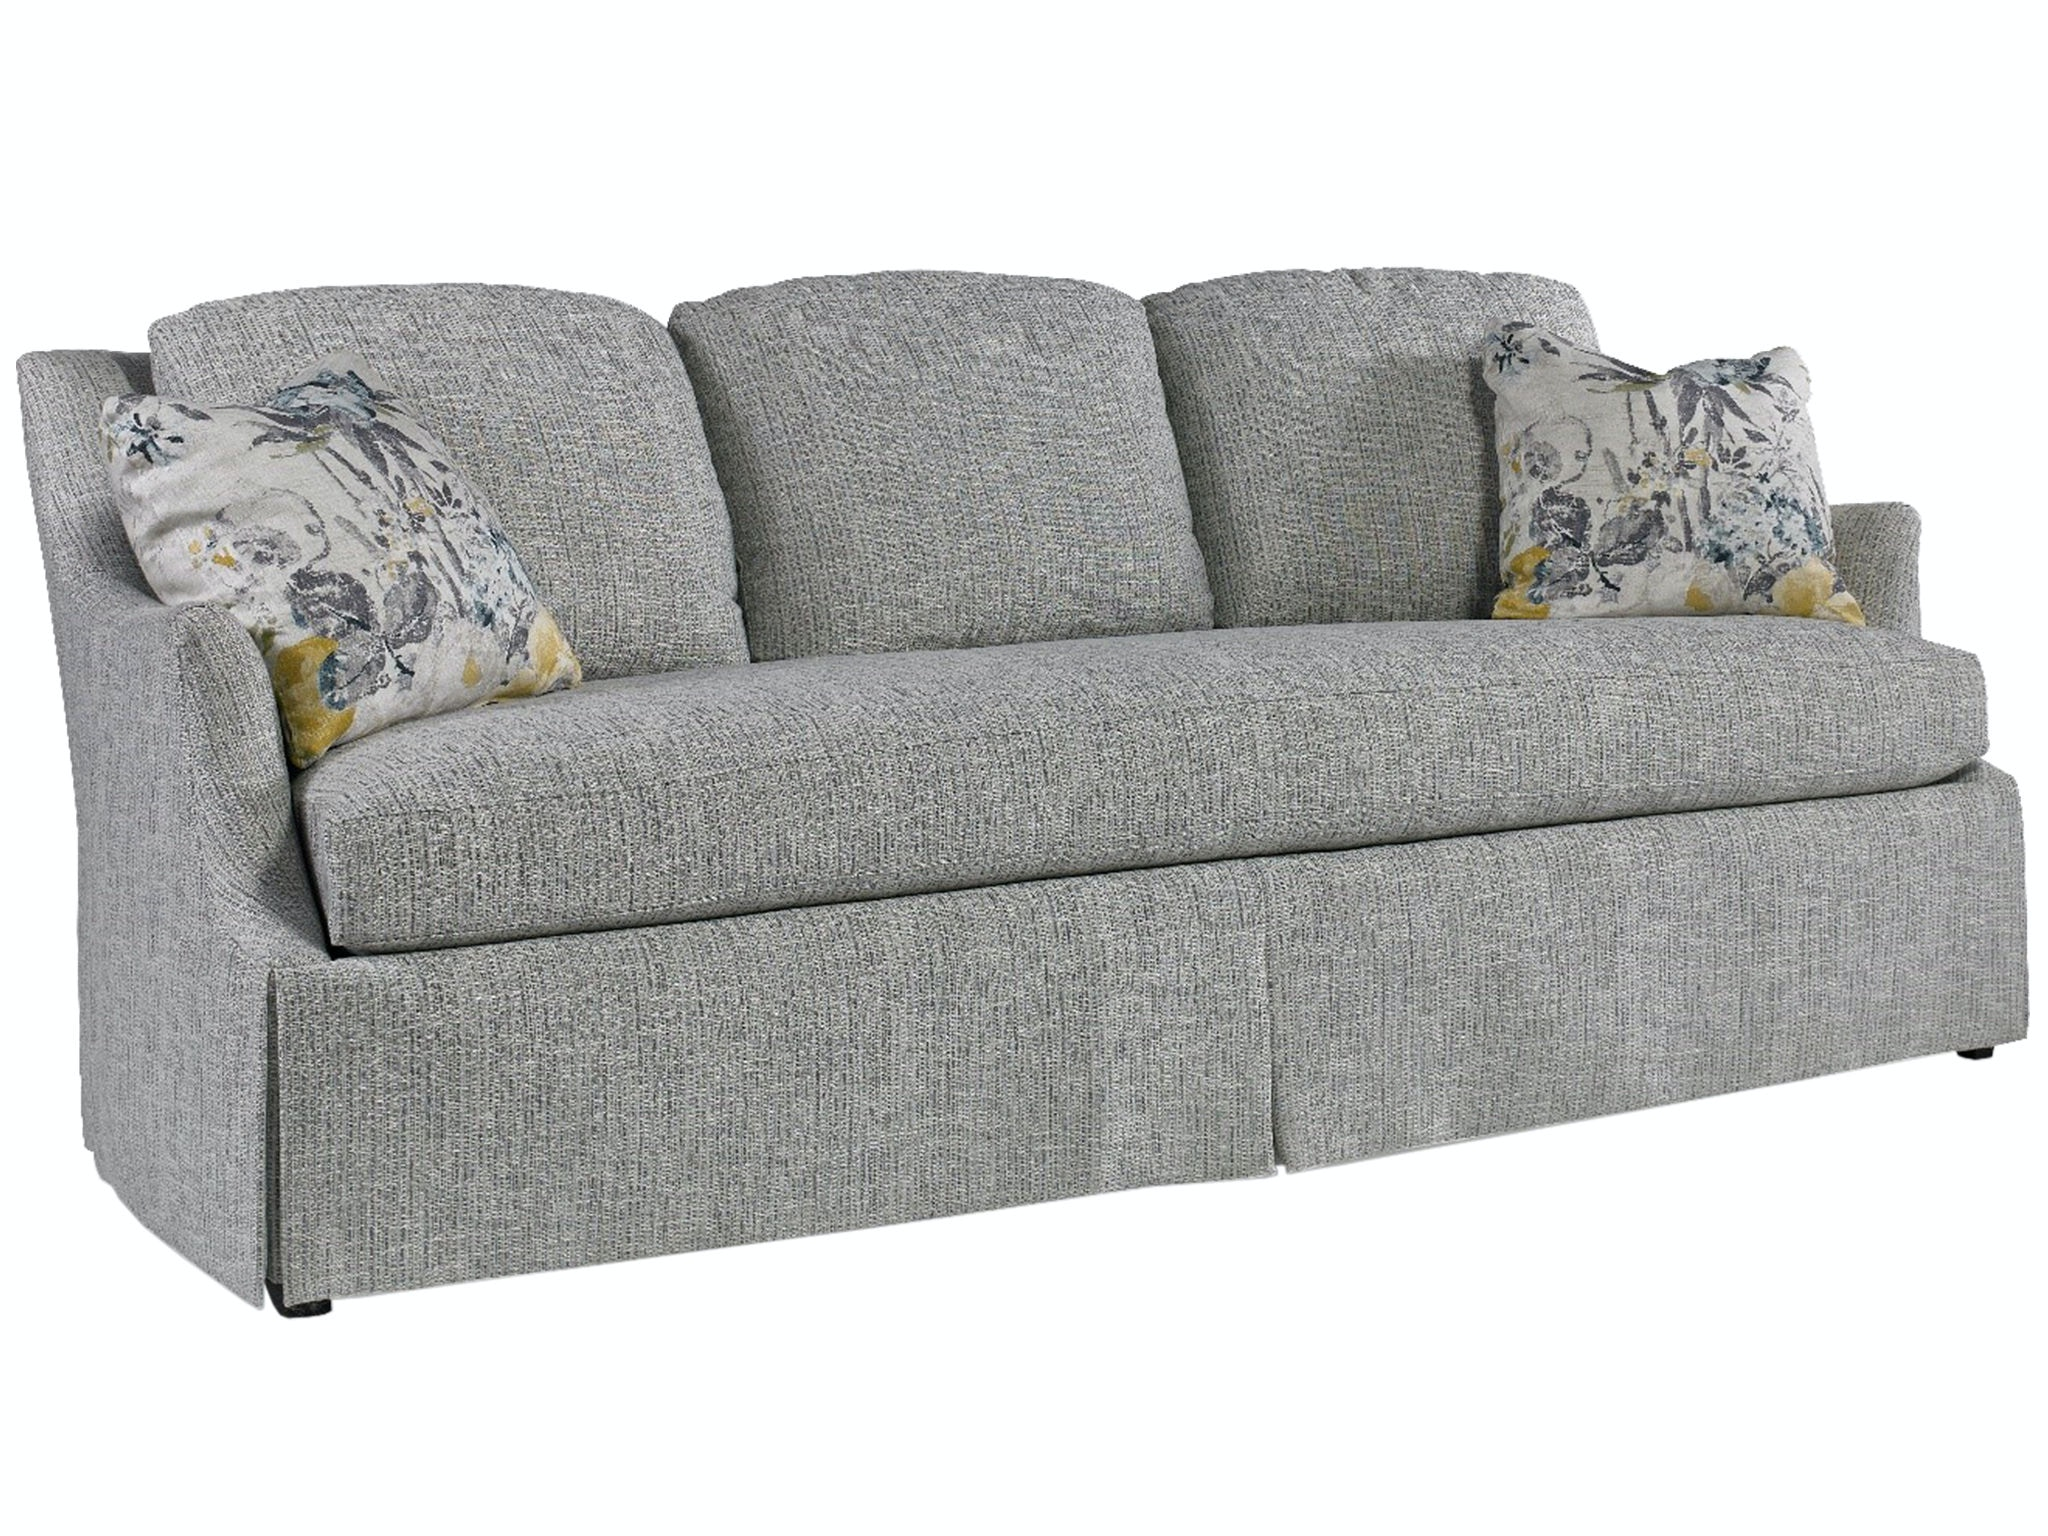 Sherrill Sofa 1929